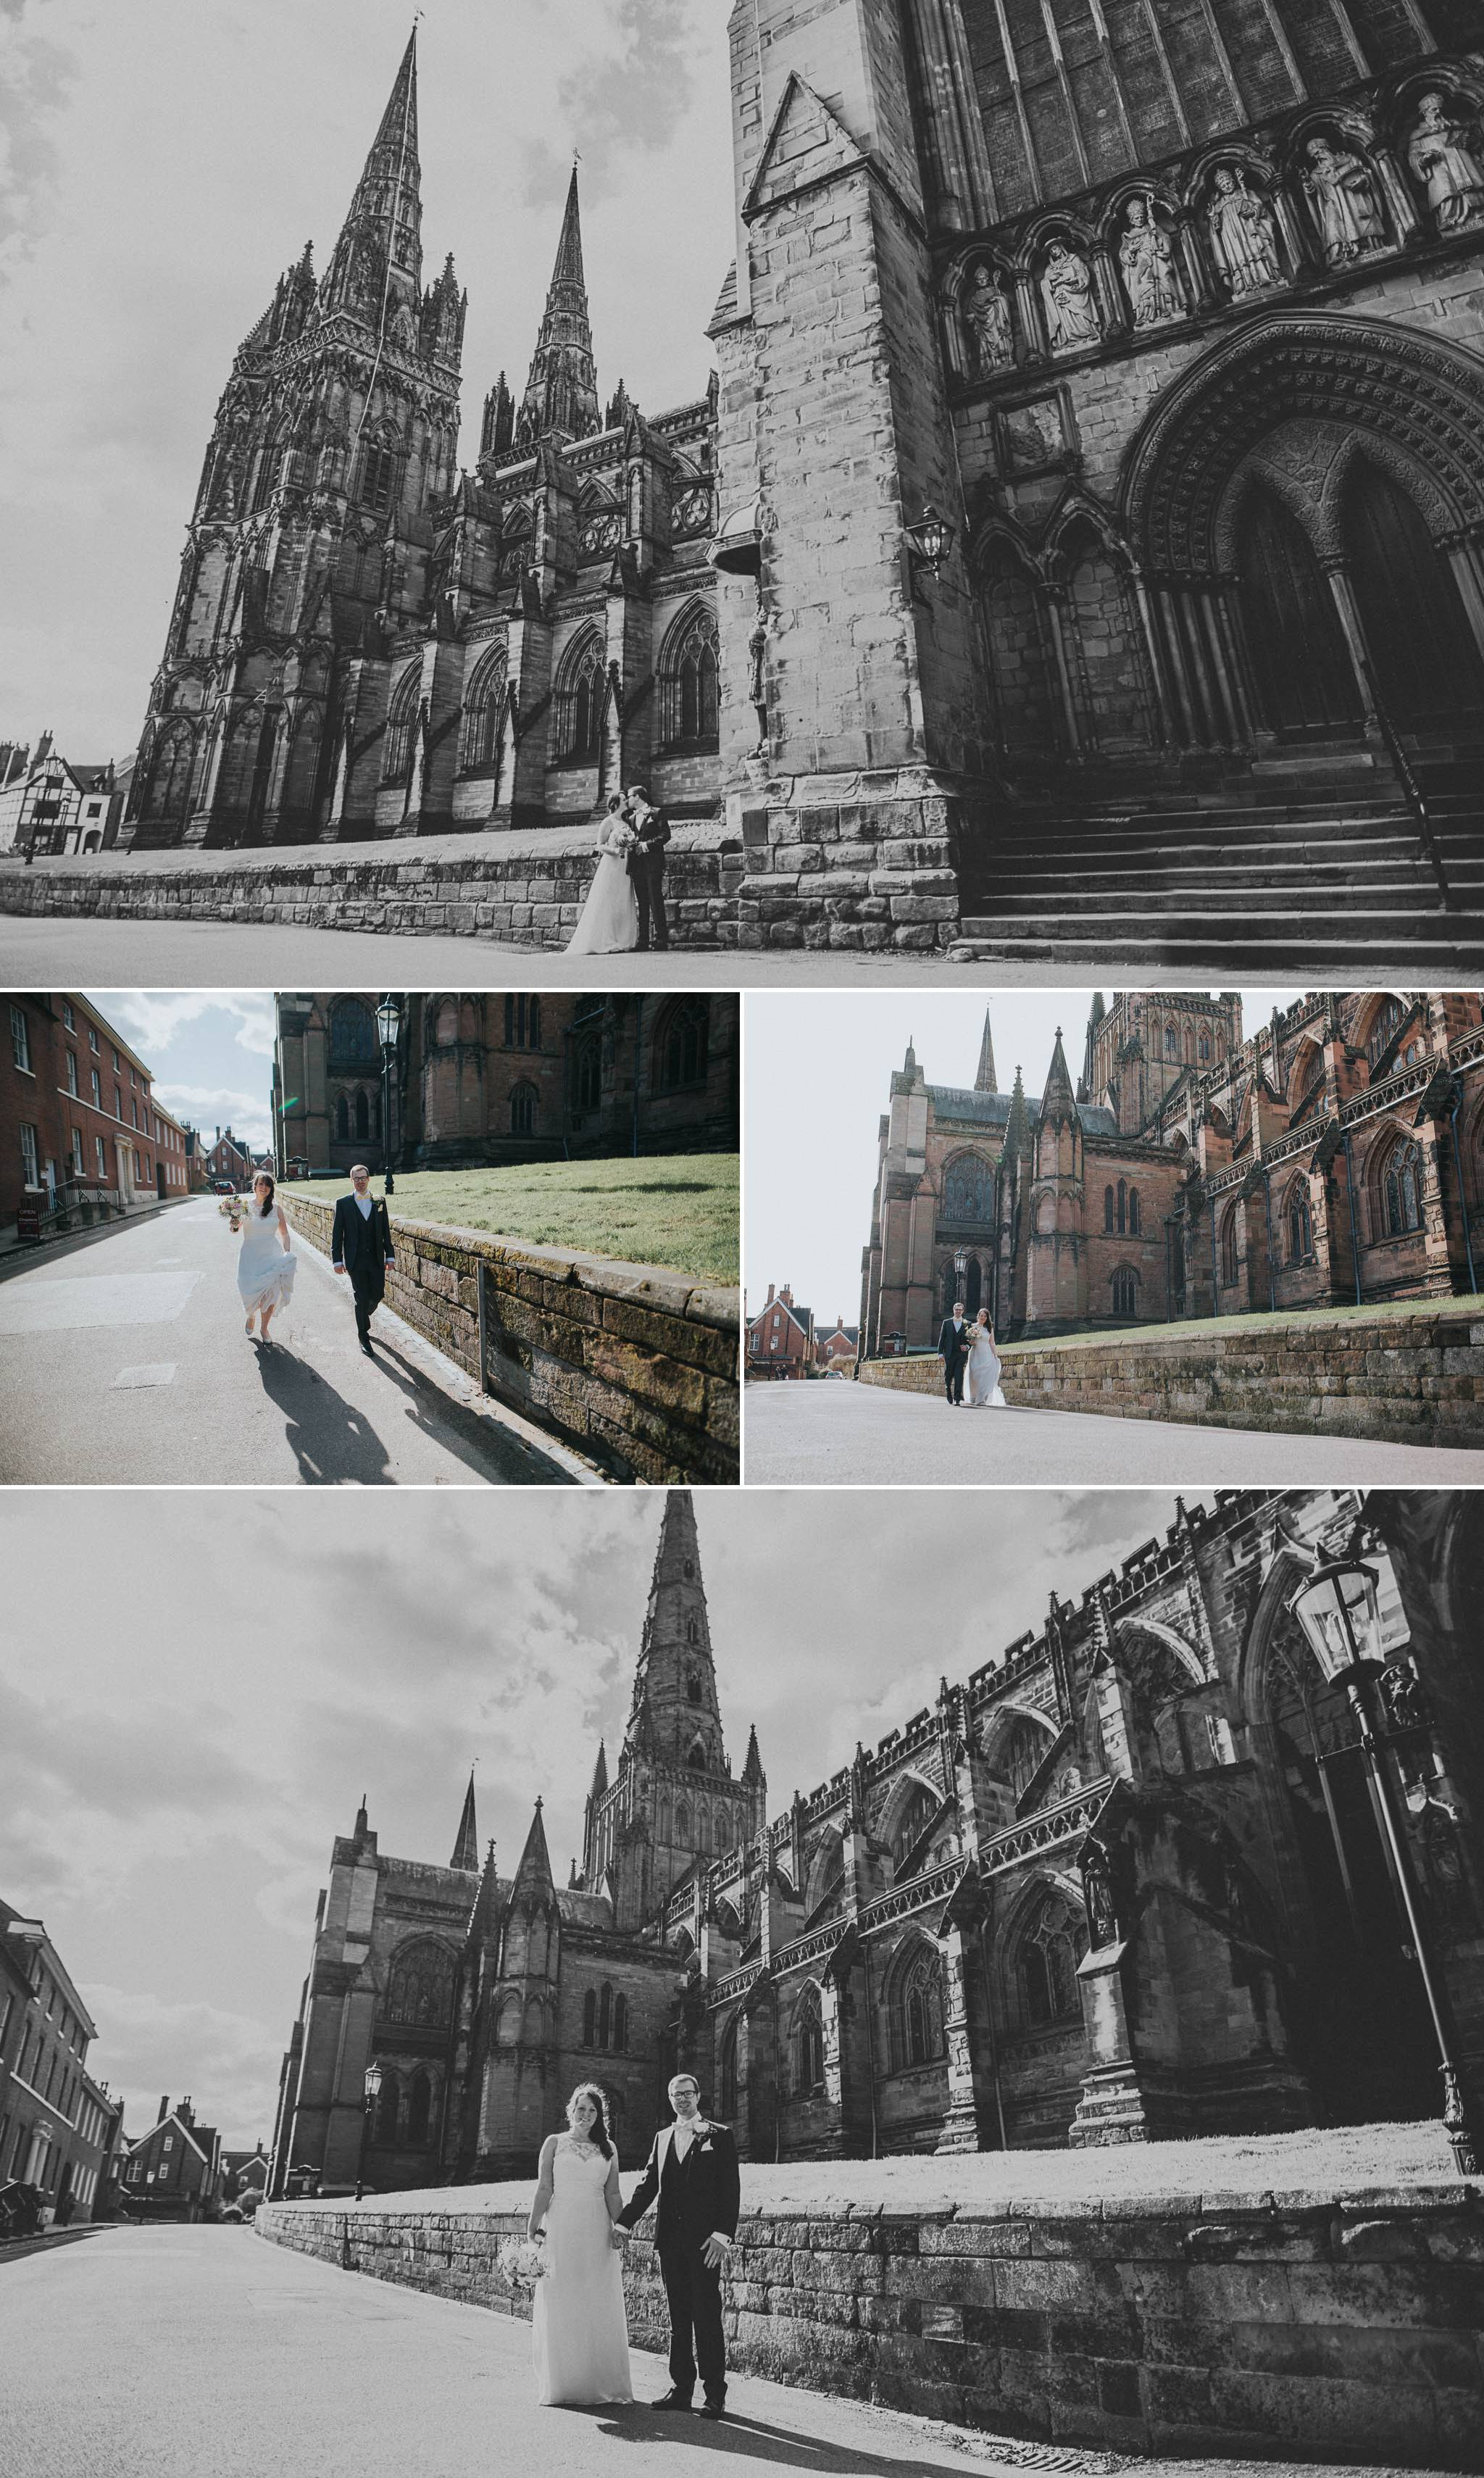 lichfield-cathedral-wedding-photography 15.jpg